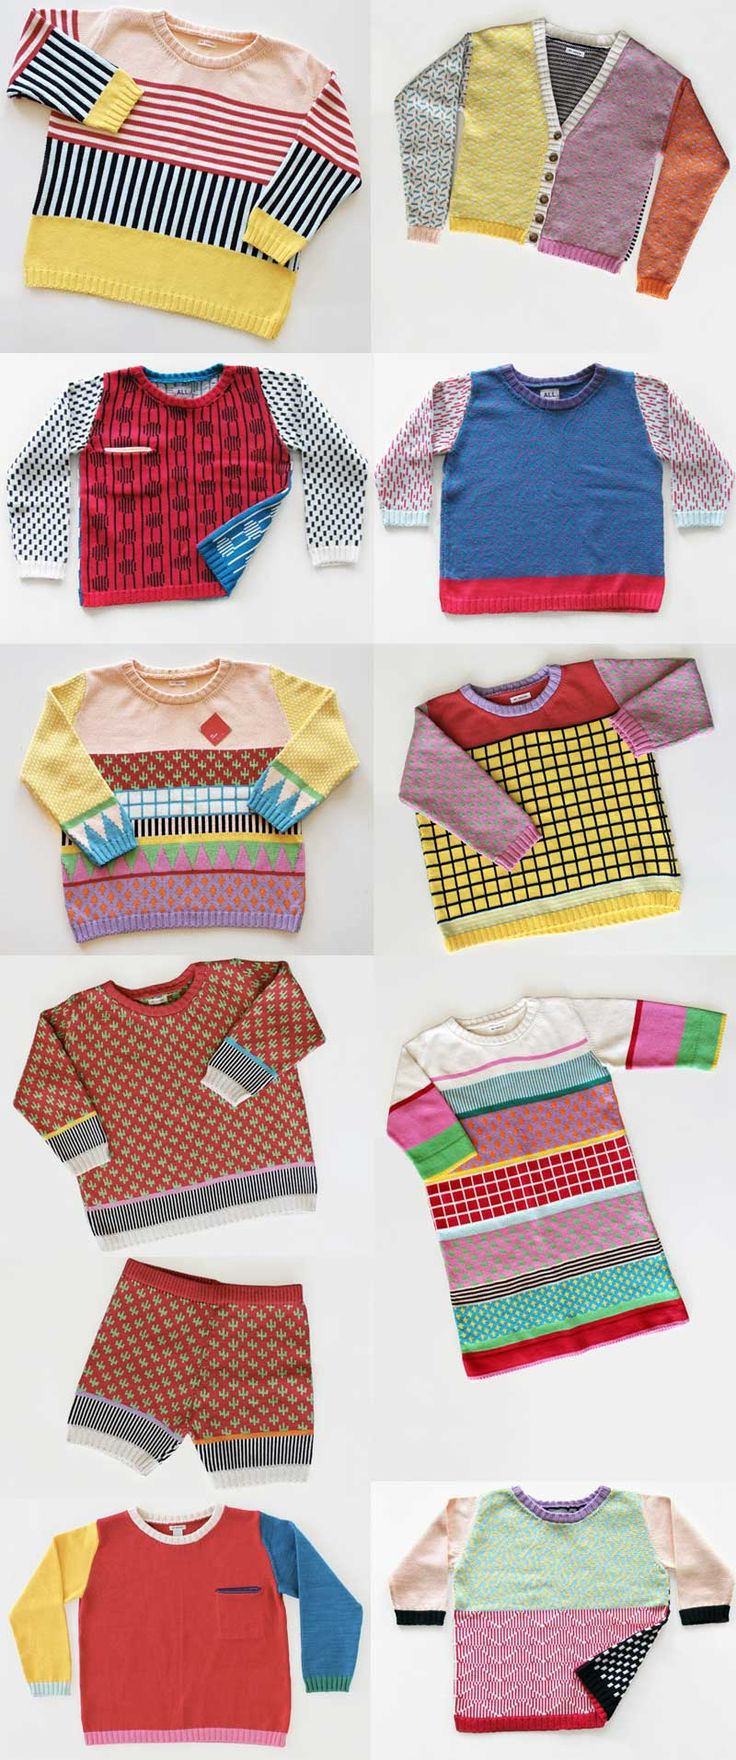 Such fun knits for the cold weather! Get these and more by shopping at Grabr.io #GrabrXmas #baby #kids #uglysweater #christmas #holidays